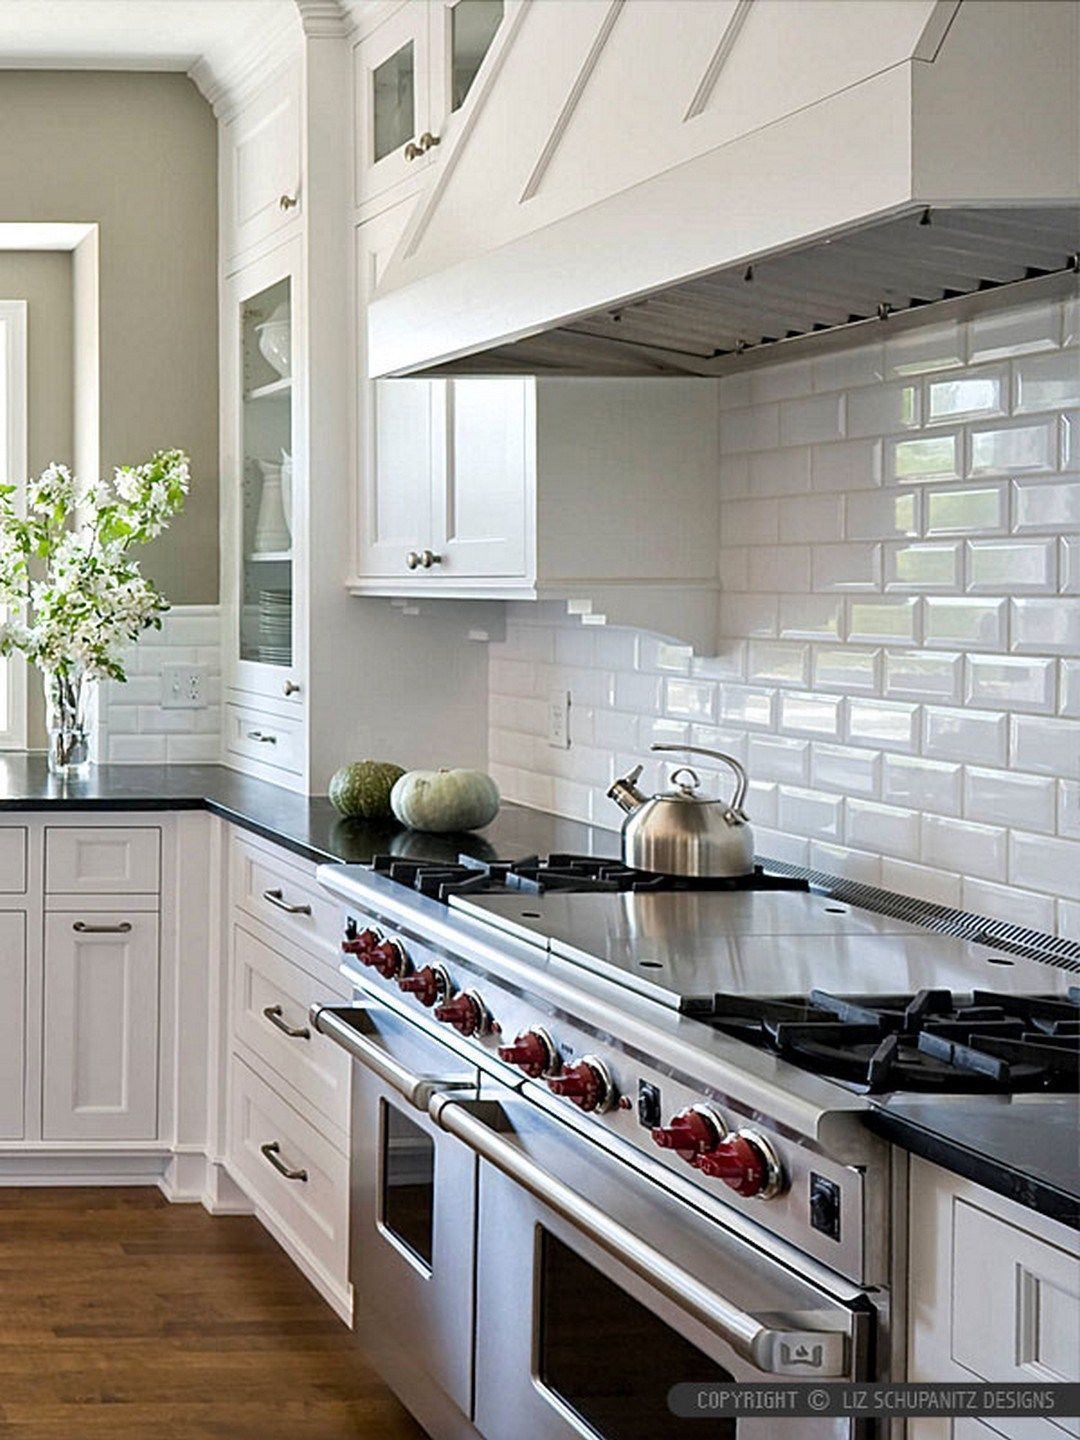 Explore Kitchen Countertop Ideas On Pinterest See More Ideas